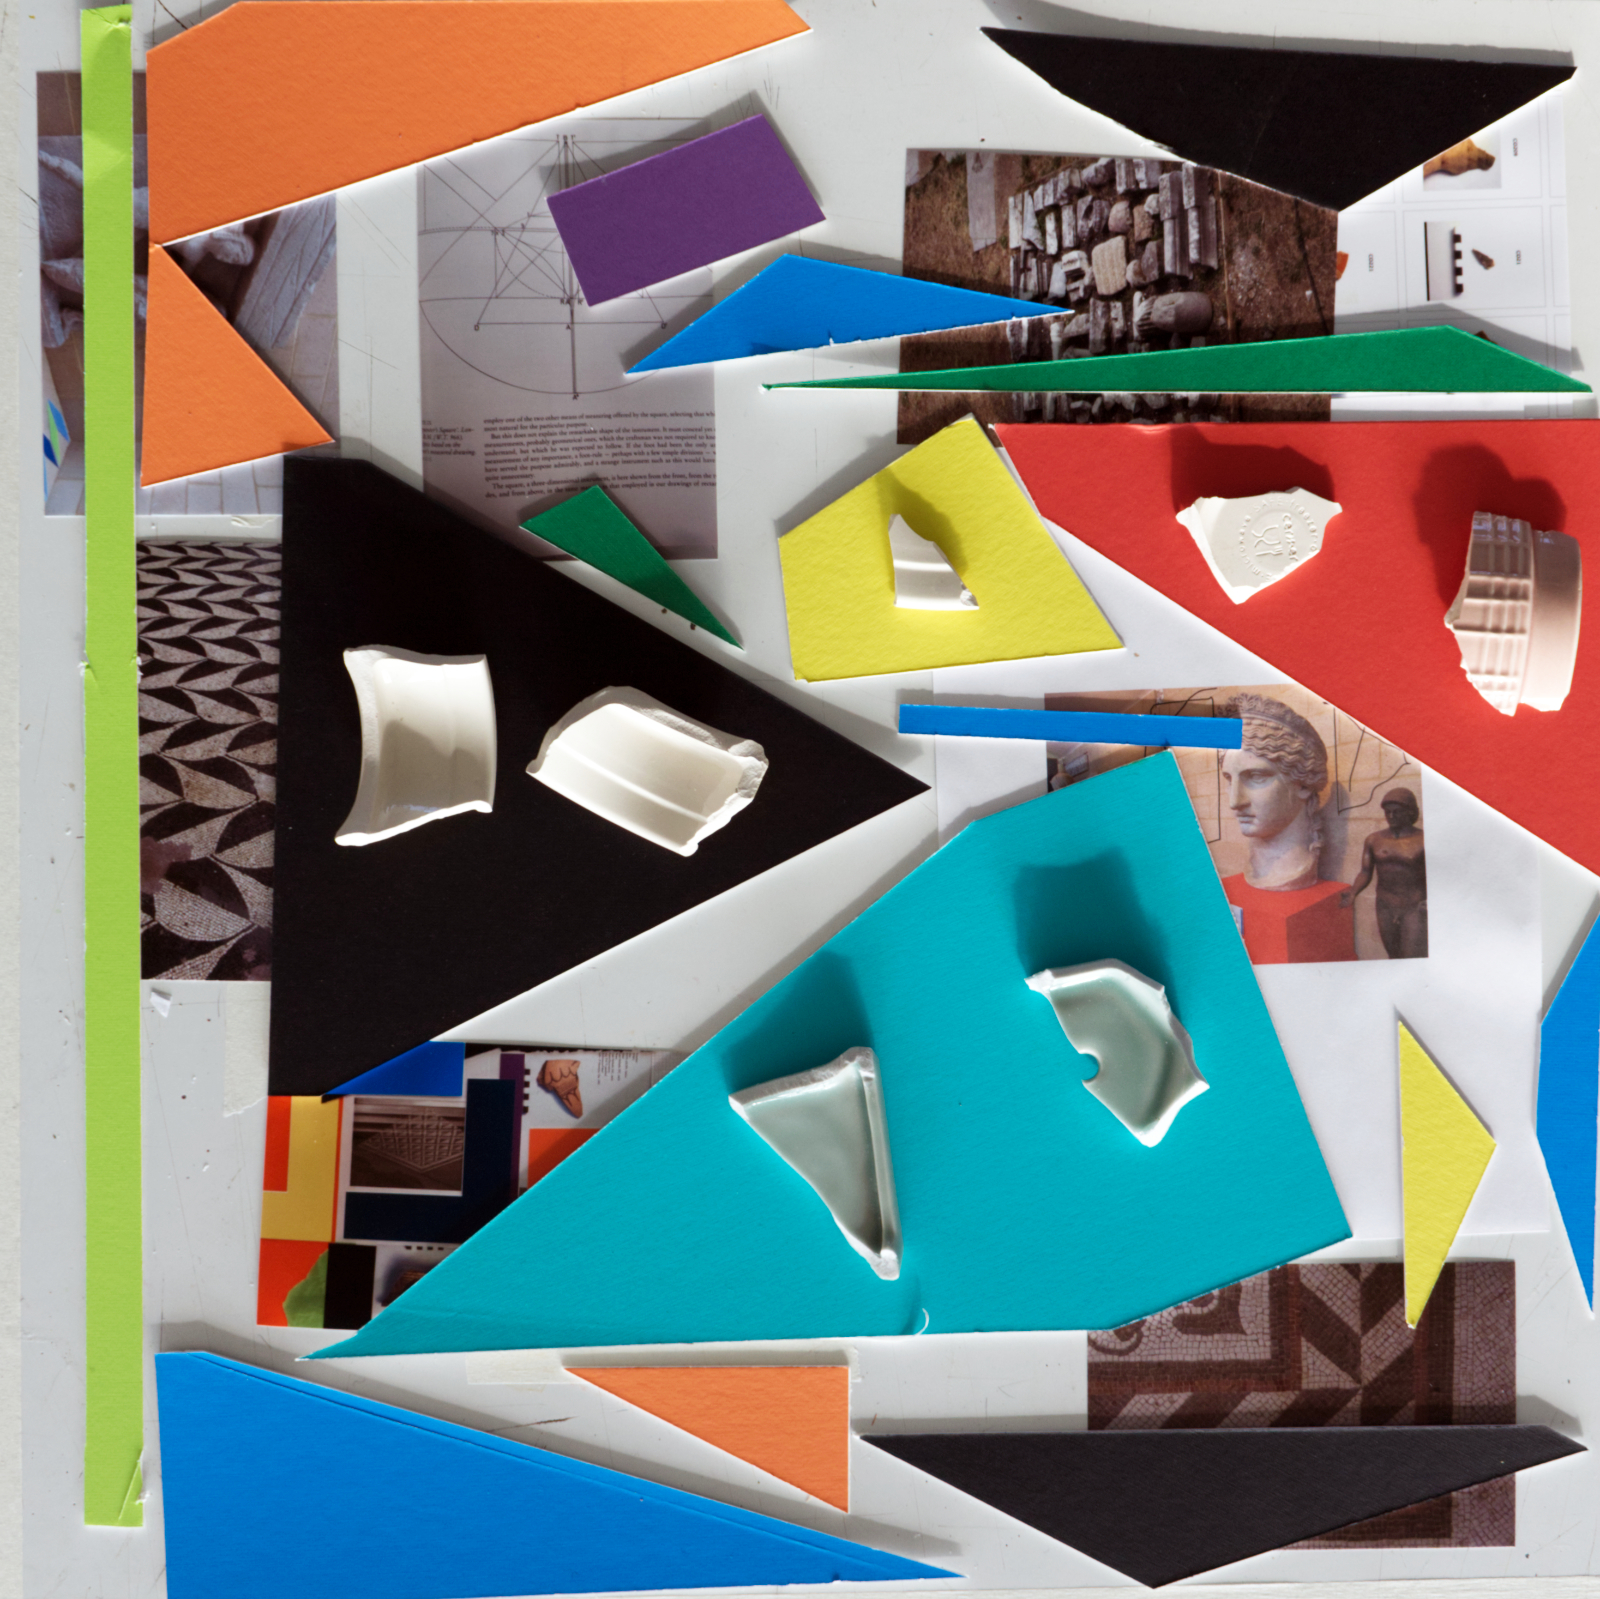 Colourful mountboard in geometric sherds, interspersed with photographs and pottery sherds